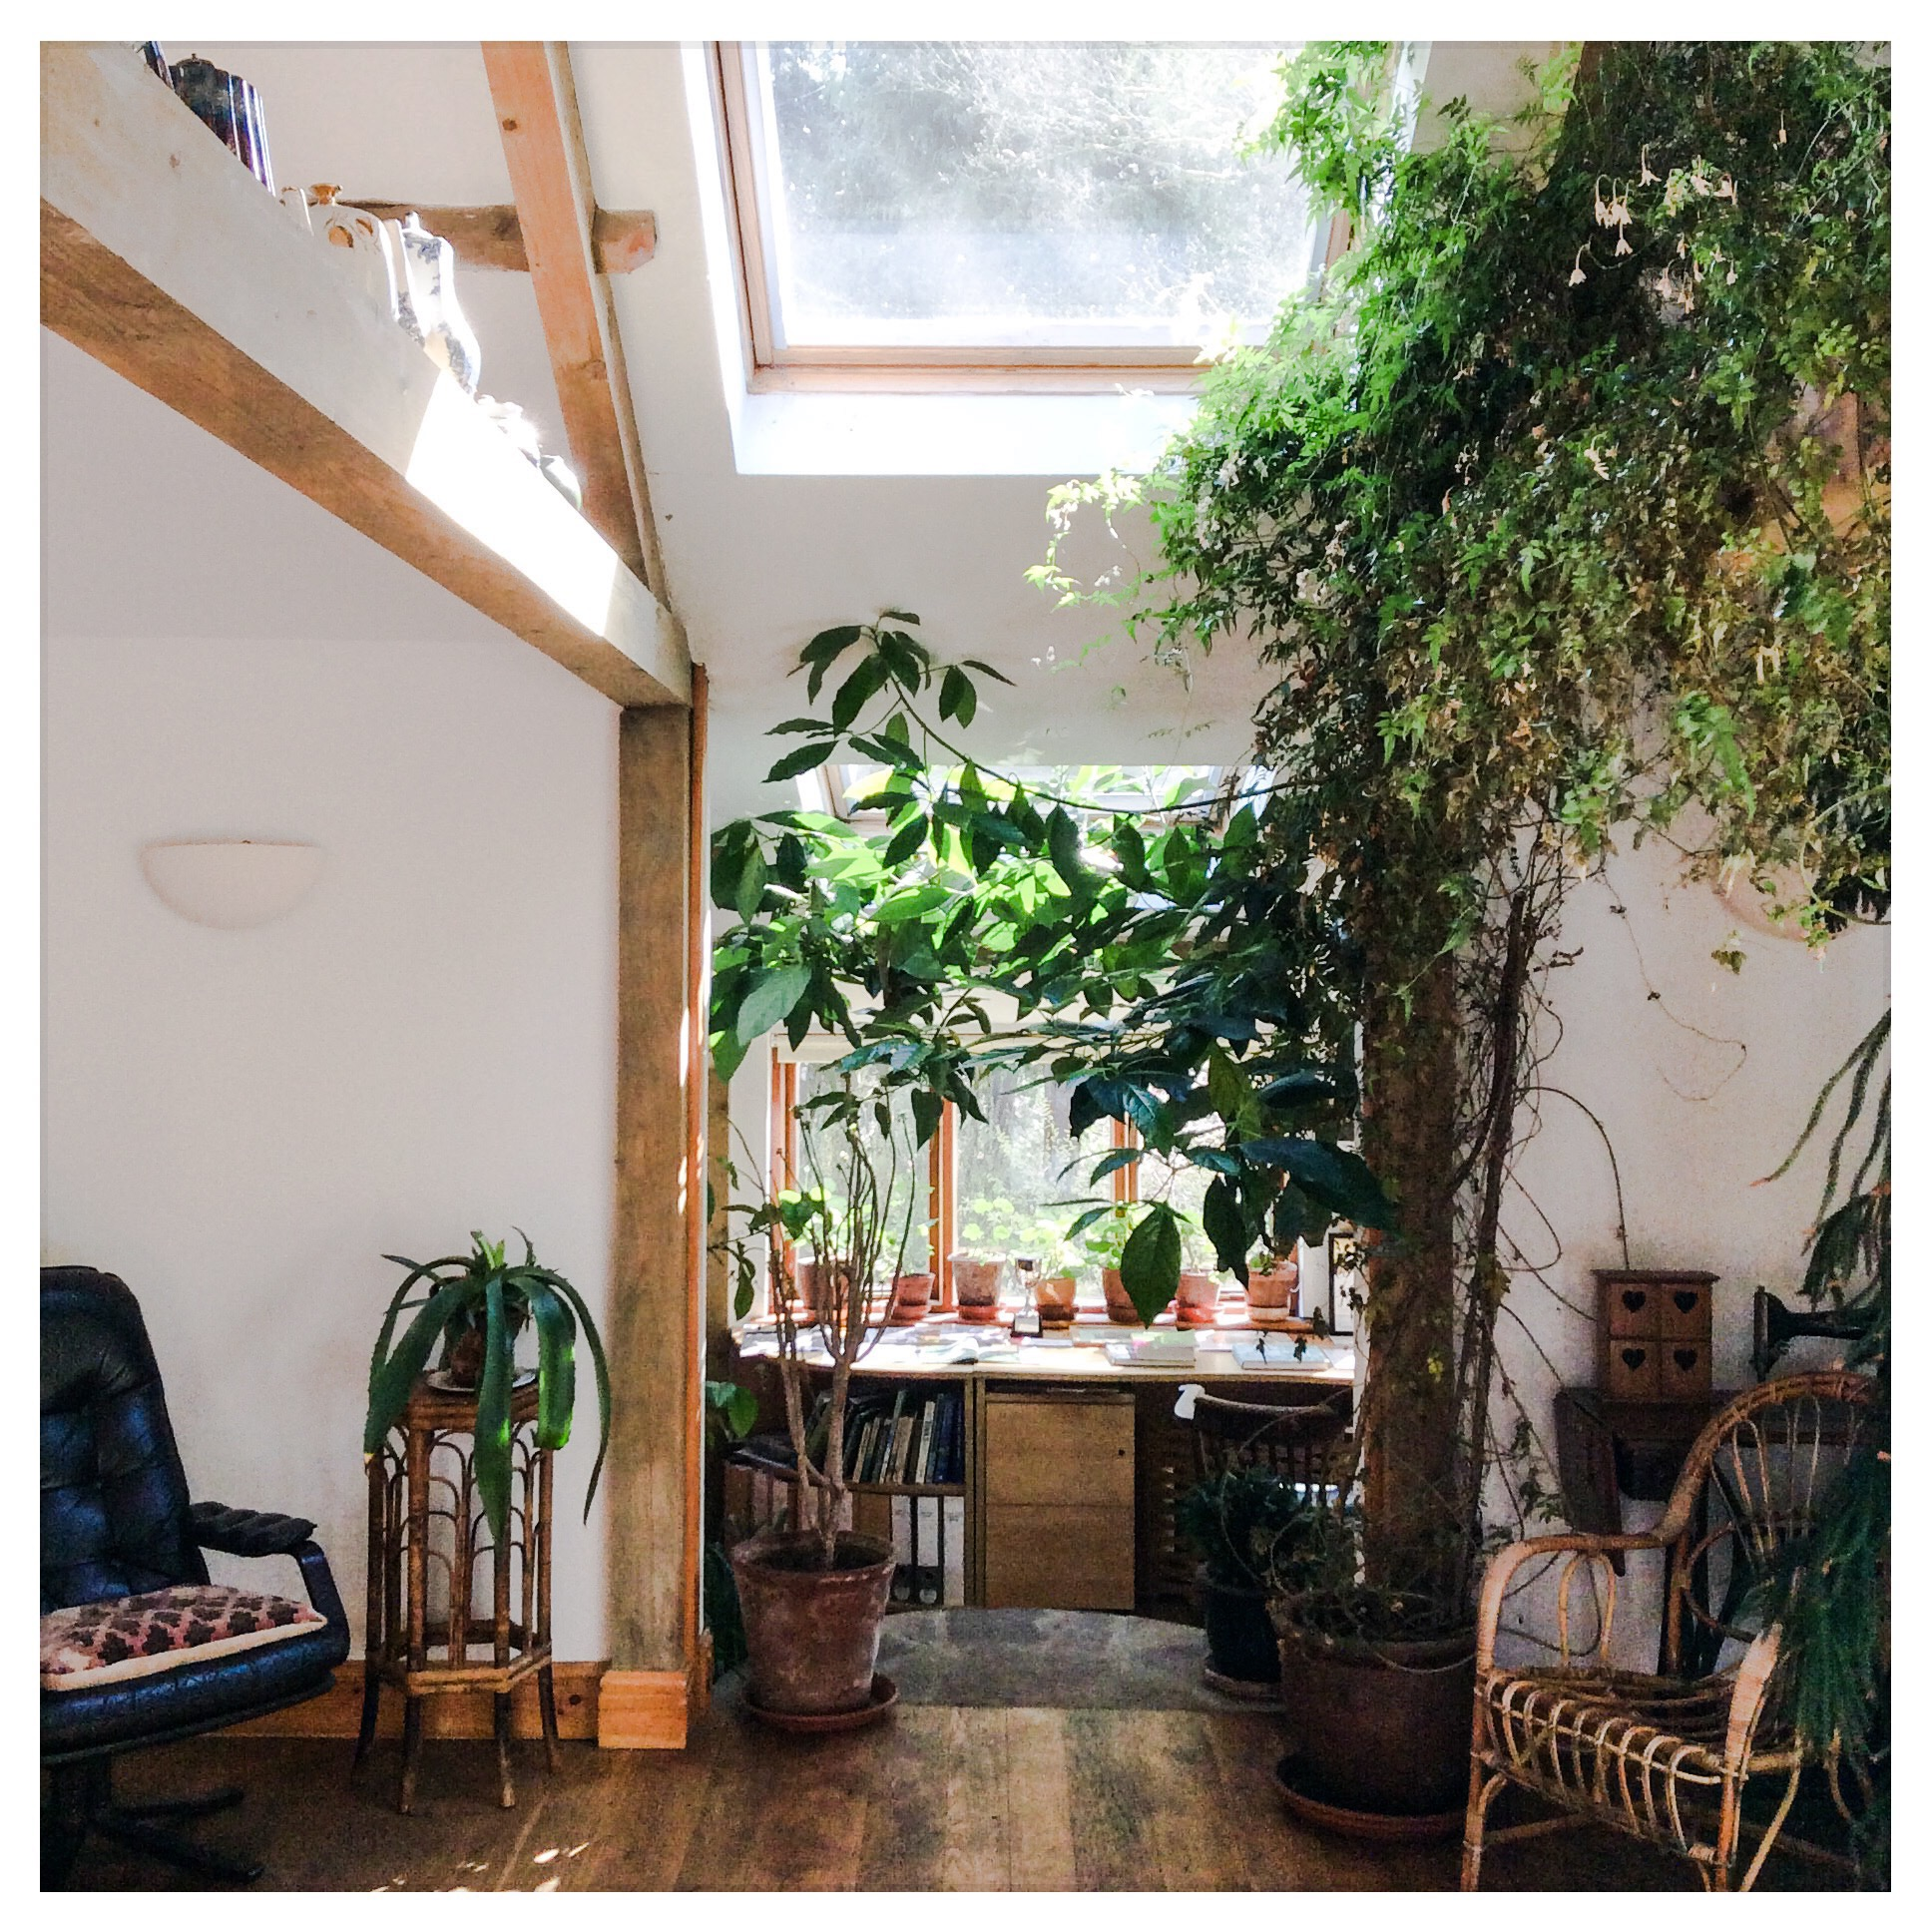 The Garden Room at Nant y Bedd. Full of Jasmine, this is the venue for the June Workshop.